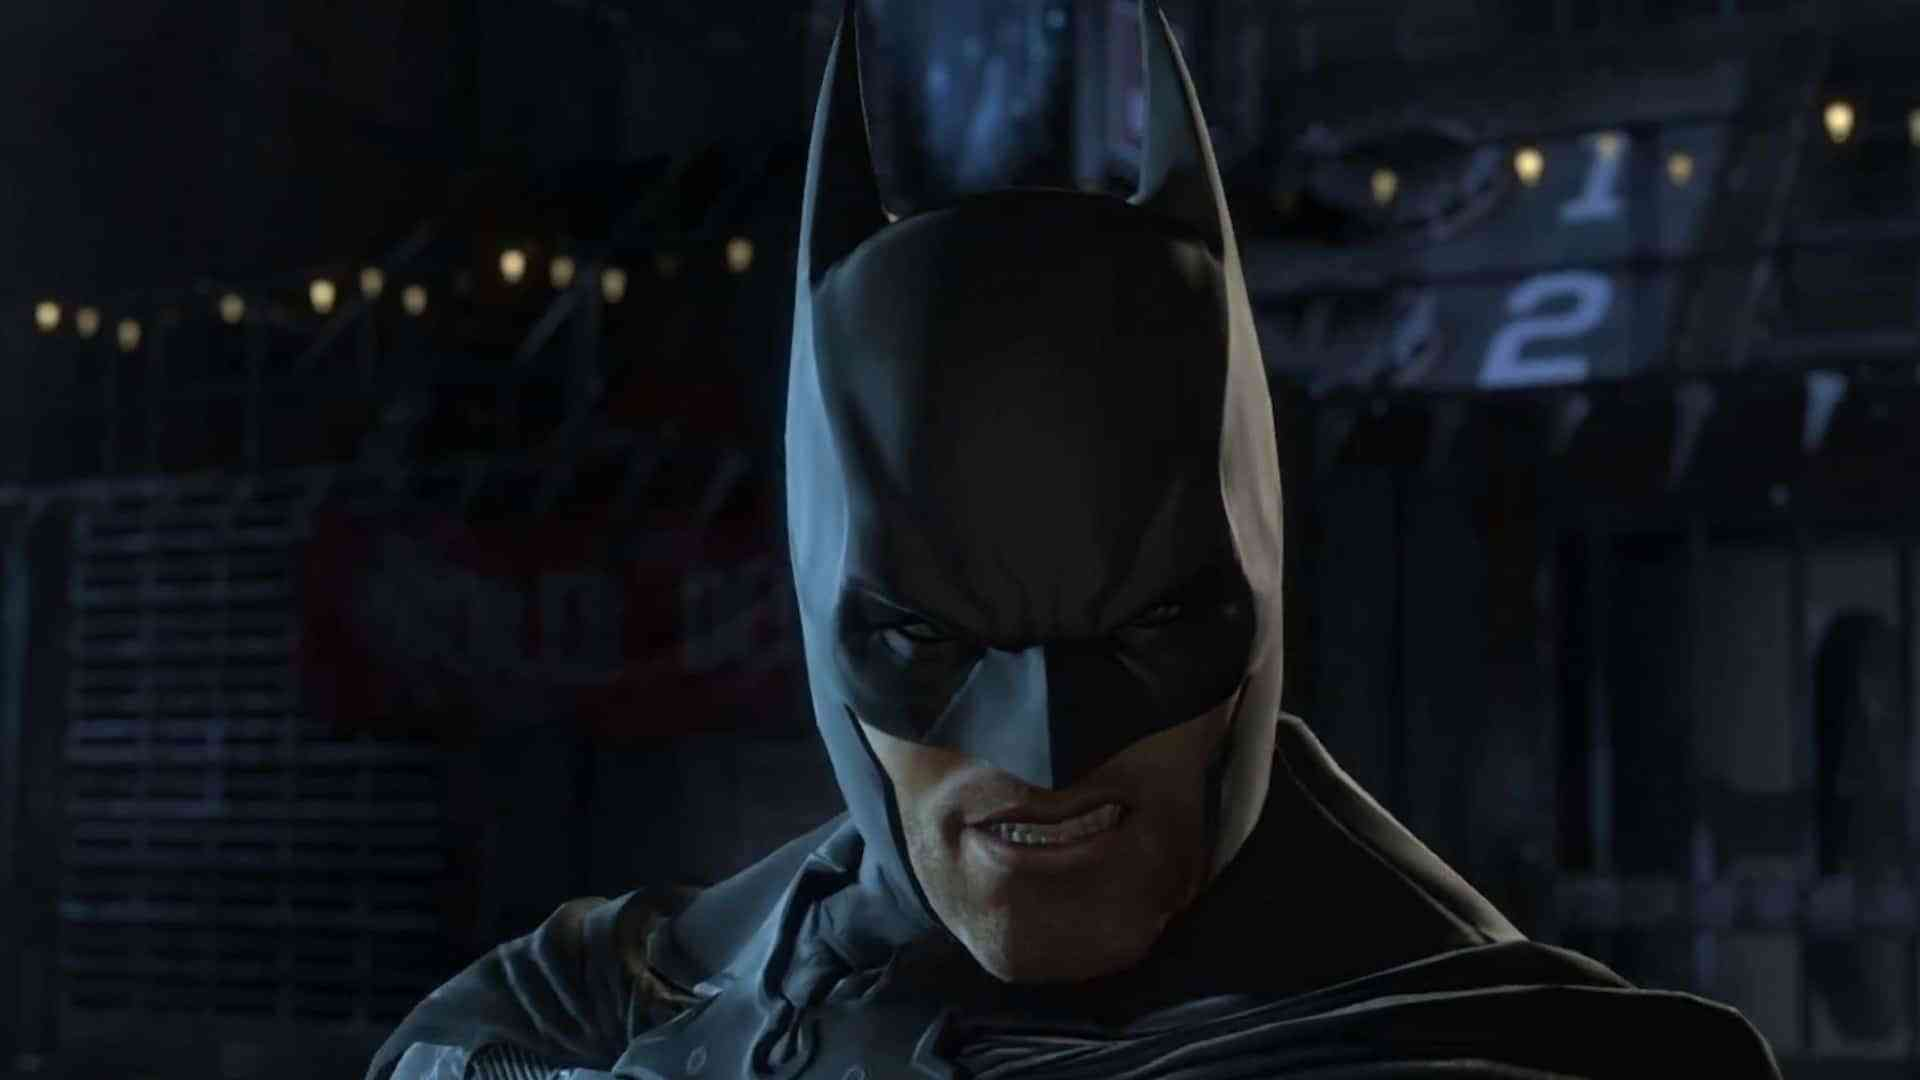 This Isnt Game >> Batman: Arkham Origins (PS3) Review – Proof That Bigger Isn't Always Better, but it Still Can be ...